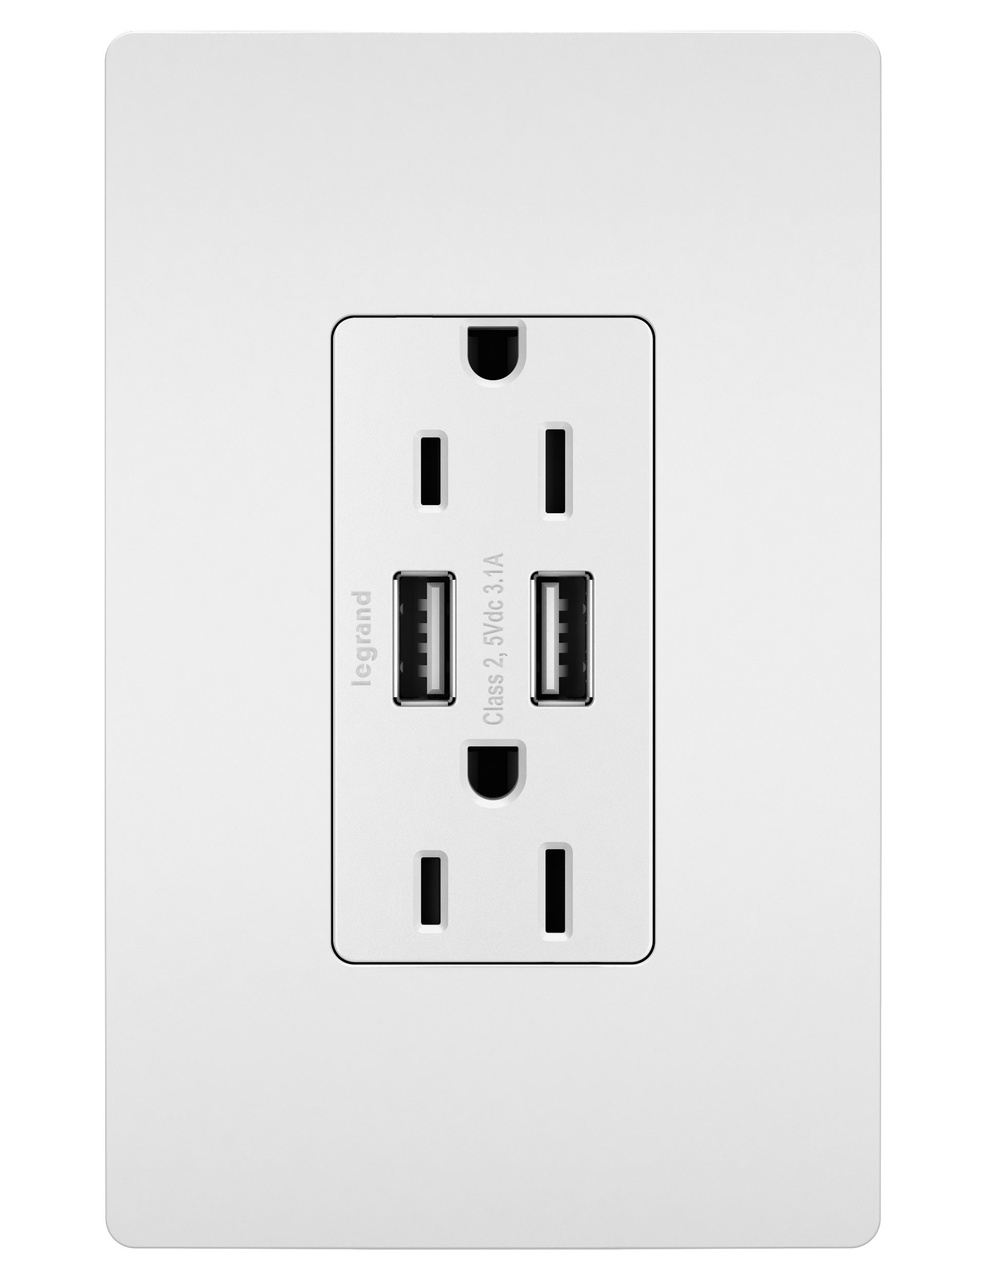 Radiant usb chargers with duplex 15a tamper resistant outlets tm826usbwcc6 p asfbconference2016 Image collections